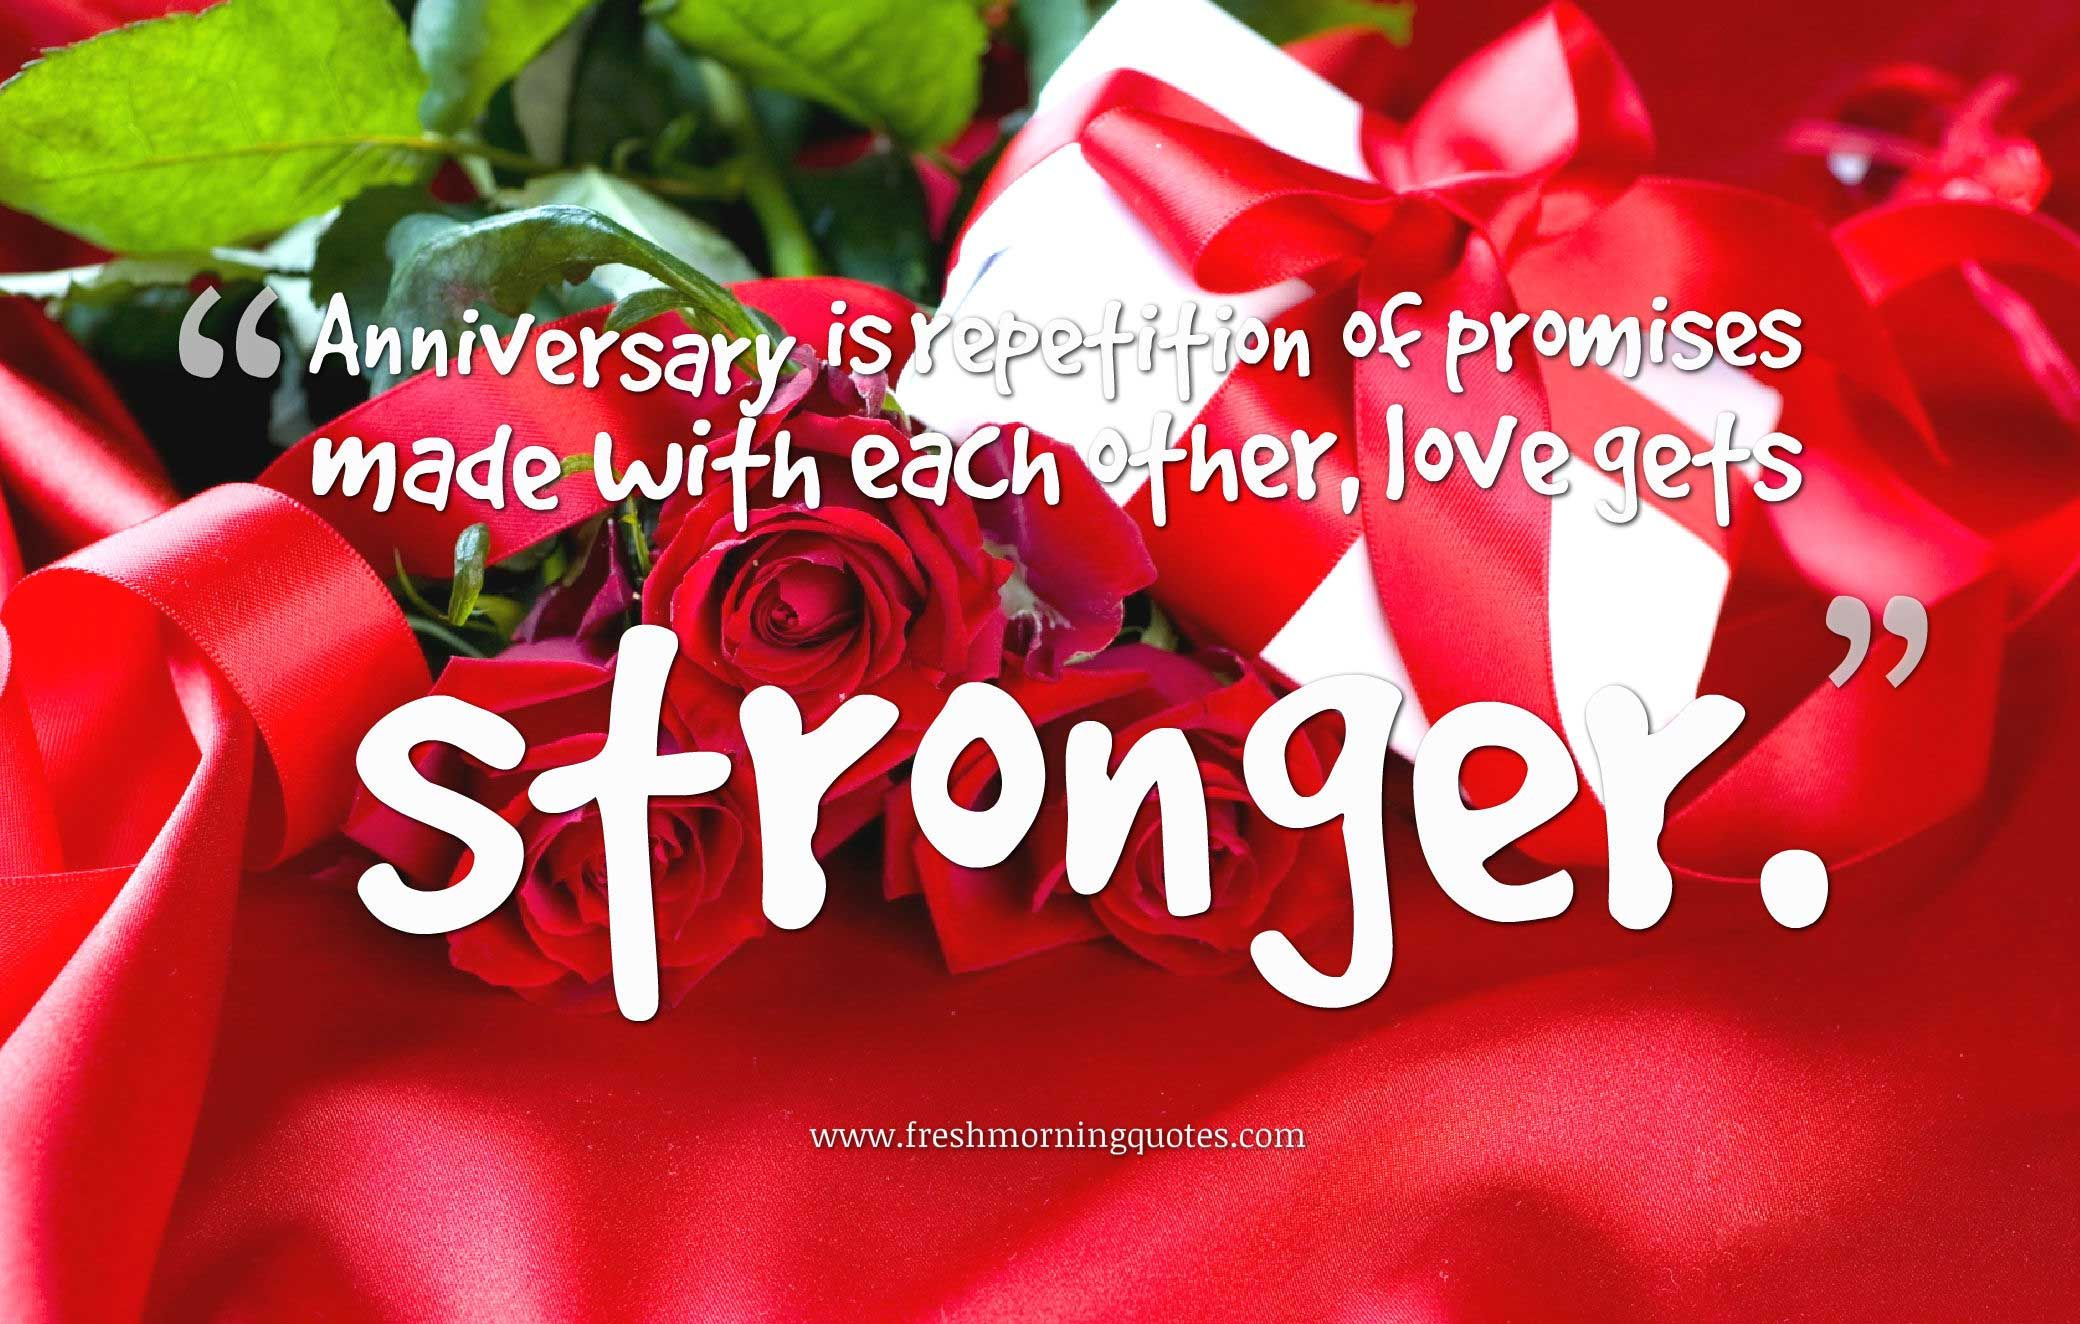 Anniversary status for whatsapp wedding anniversary wishes quotes